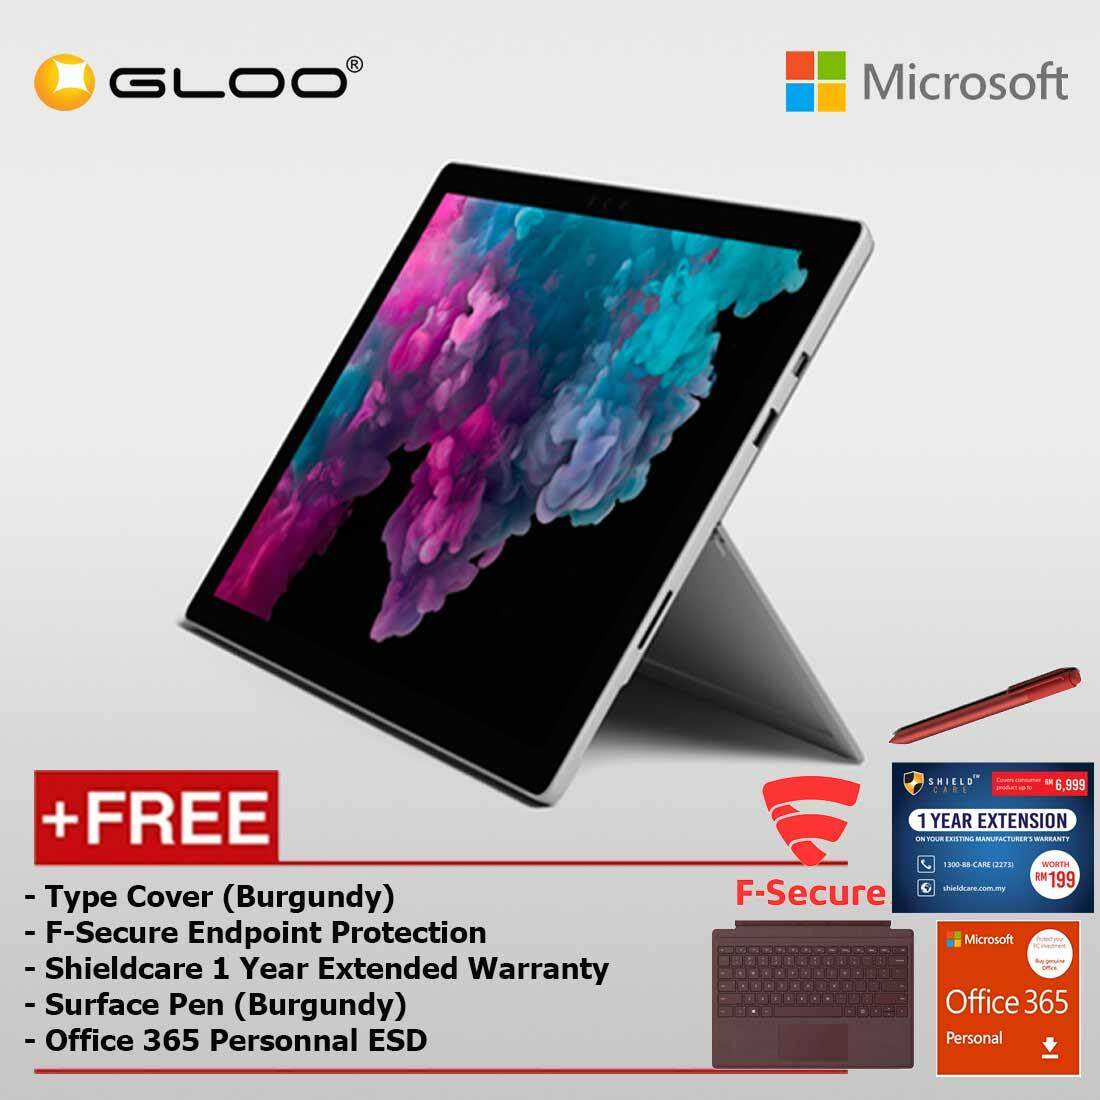 Microsoft Surface Pro 6 Core i5/8GB RAM -128GB + Type Cover Burgundy + F-Secure End Point Protection +Shieldcare 1 Year Extended Warranty + Pen Burgundy + Office 365 Personal (ESD)